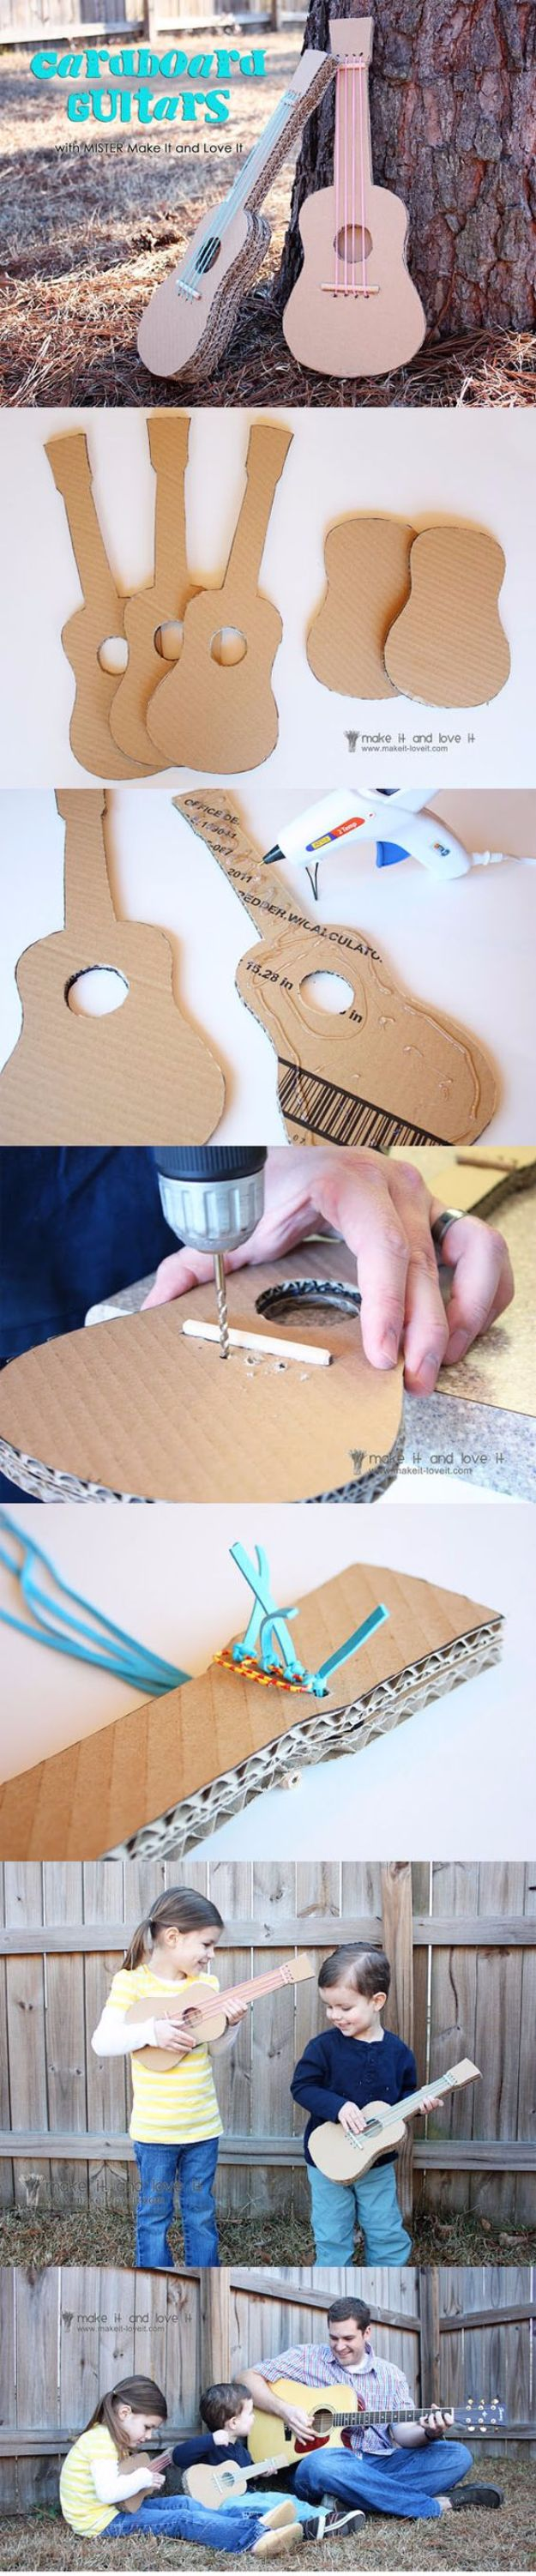 DIY Ideas With Cardboard - Cardboard Guitars - How To Make Room Decor Crafts for Kids - Easy and Crafty Storage Ideas For Room - Toilet Paper Roll Projects Tutorials - Fun Furniture Ideas with Cardboard - Cheap, Quick and Easy Wall Decorations #diyideas #cardboardcrafts #crafts